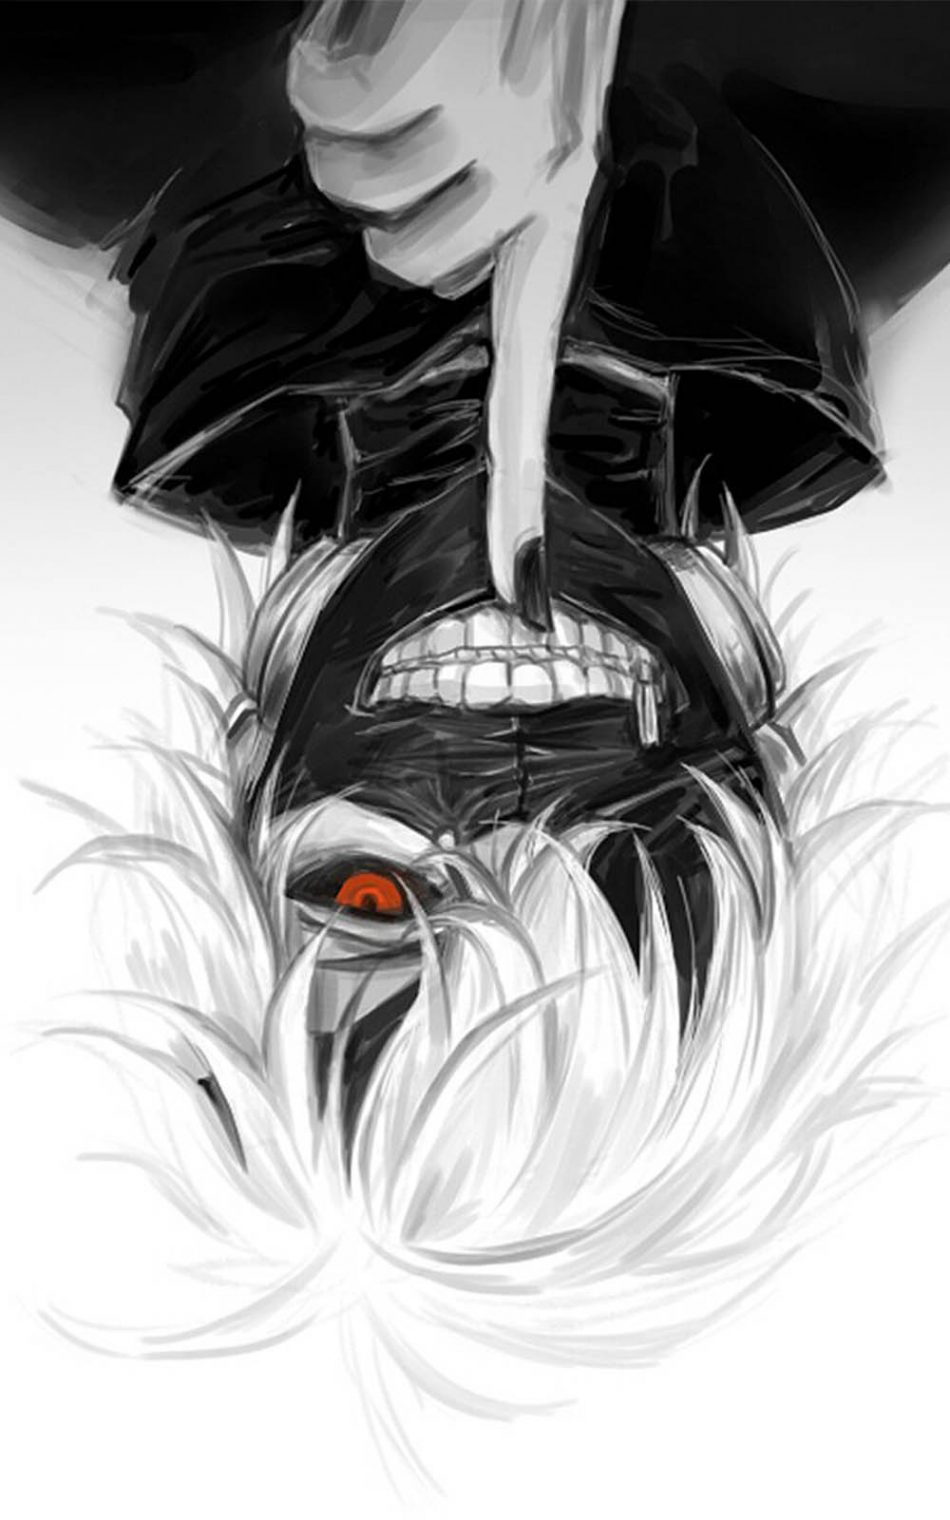 Tokyo Ghoul Hd Wallpapers Posted By Michelle Simpson